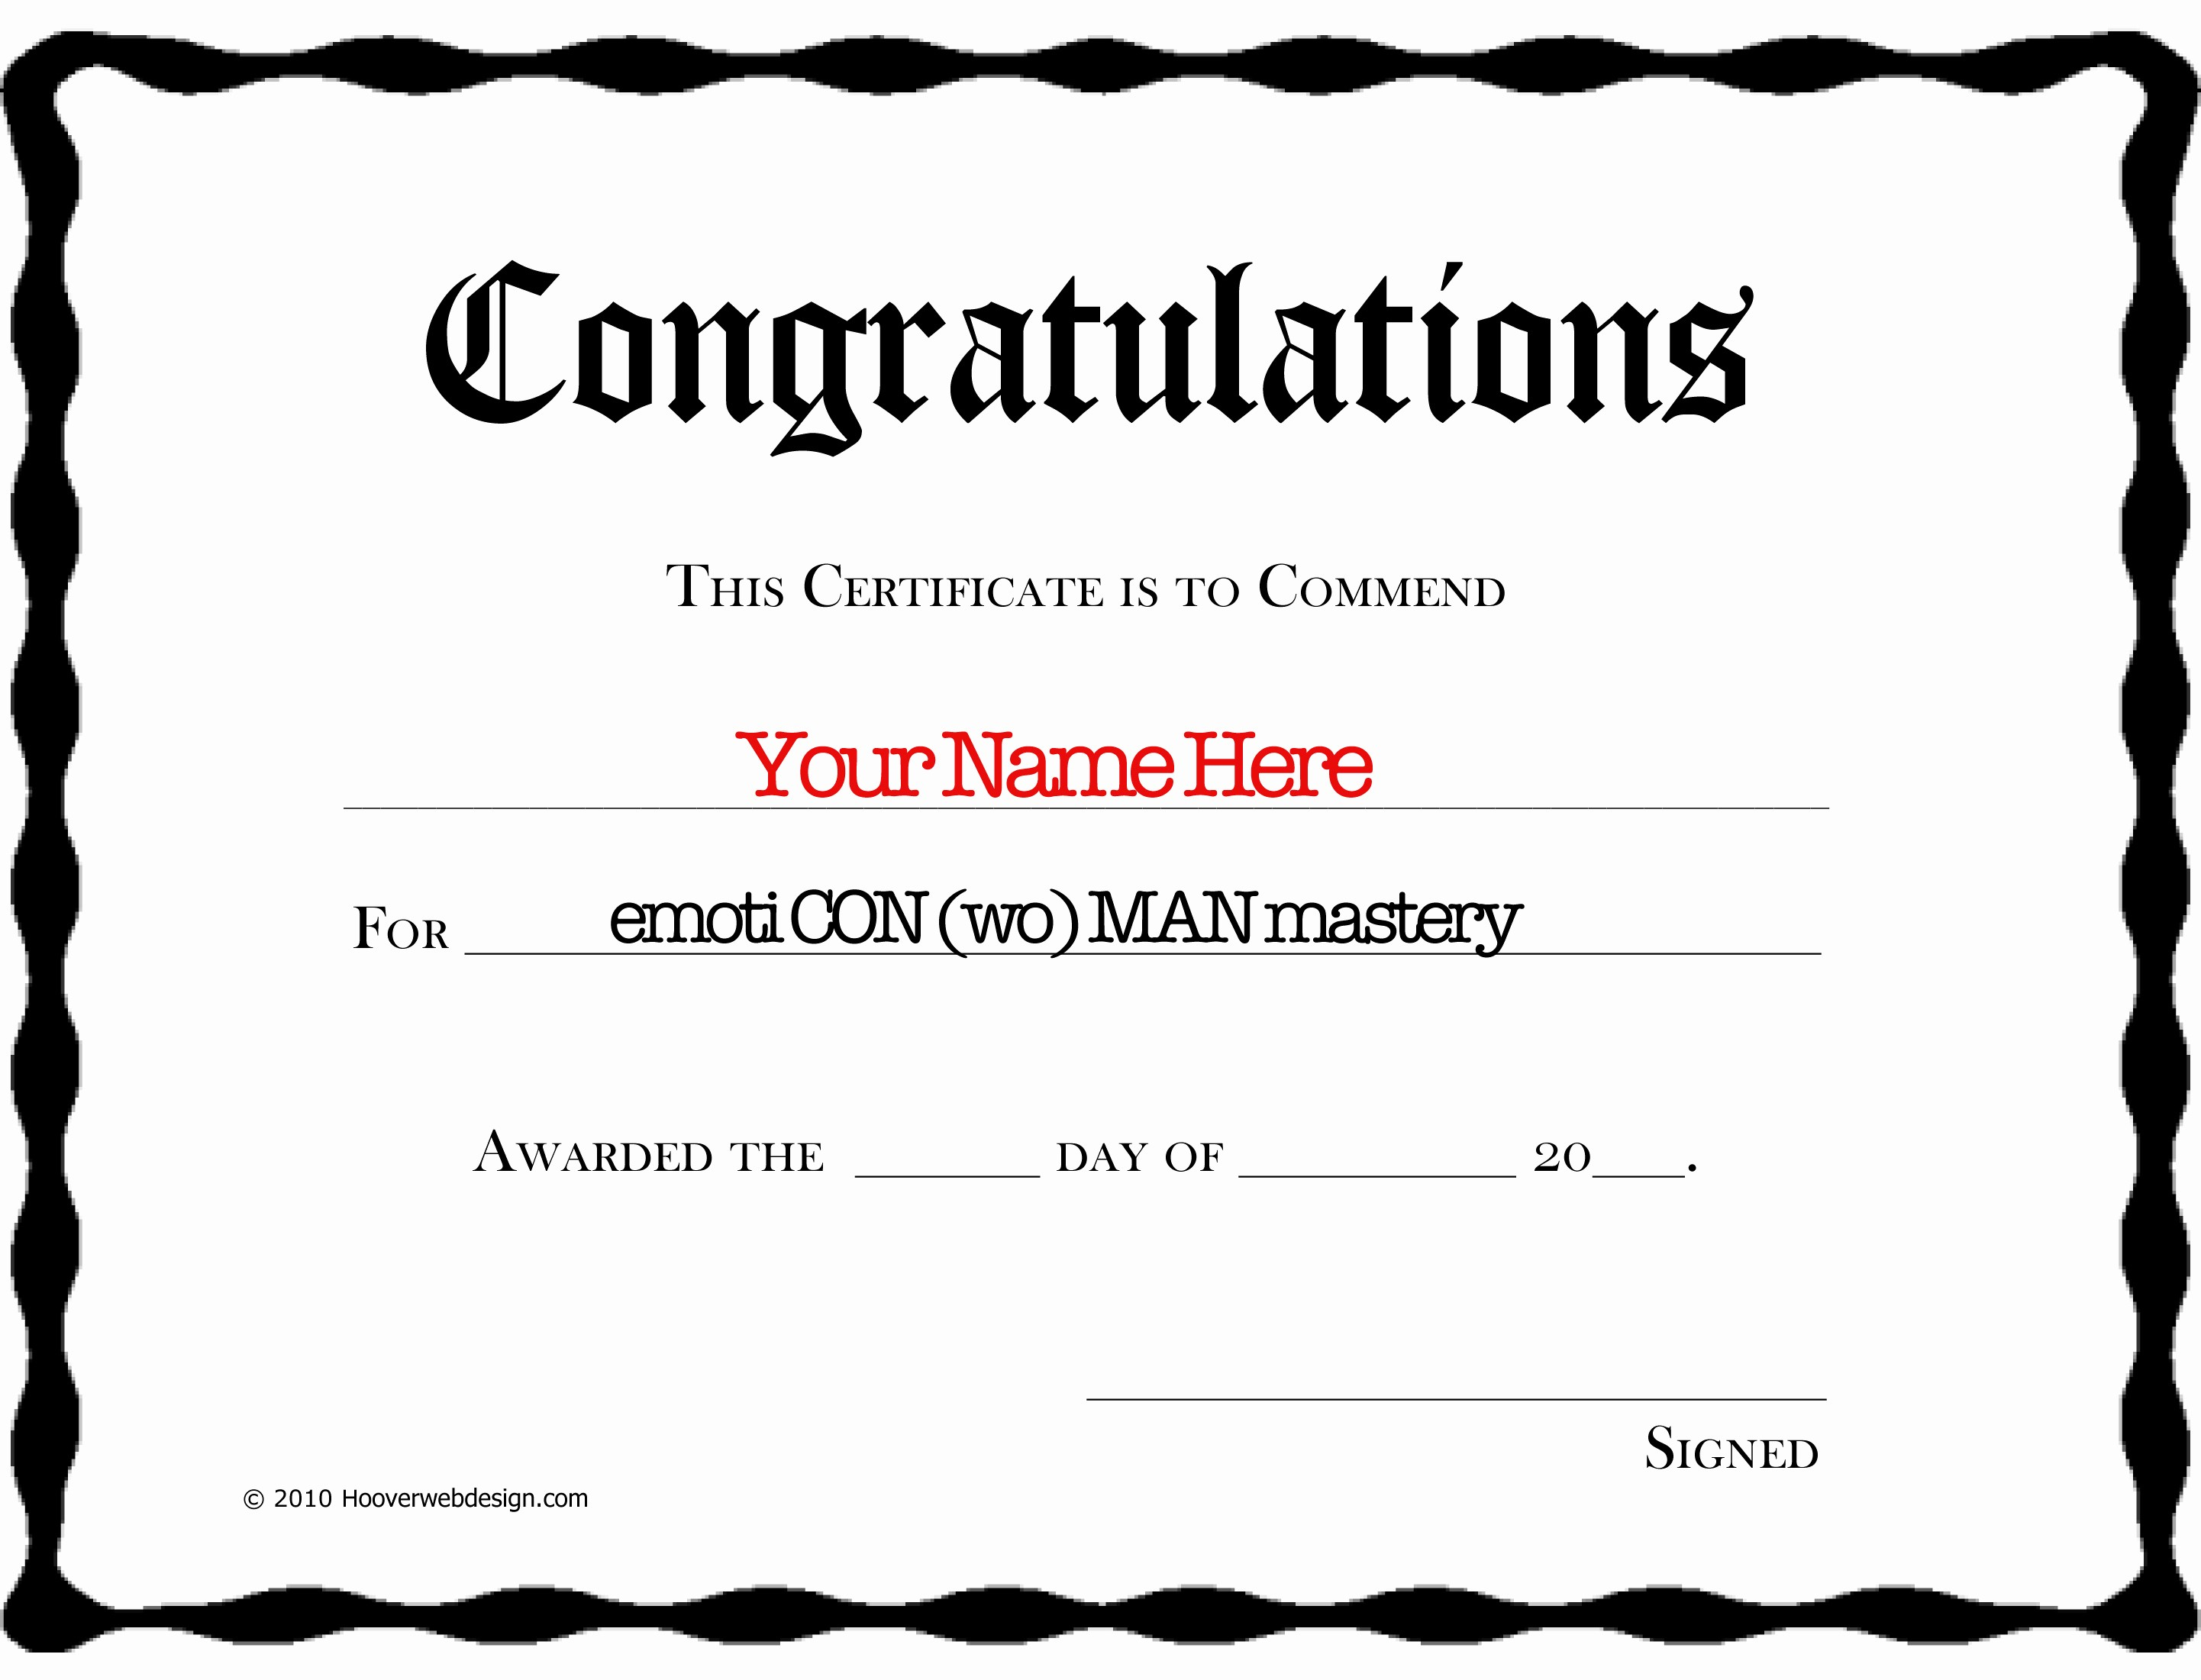 Congratulations Certificate Template Microsoft Word Beautiful Emoti Con Wo Man